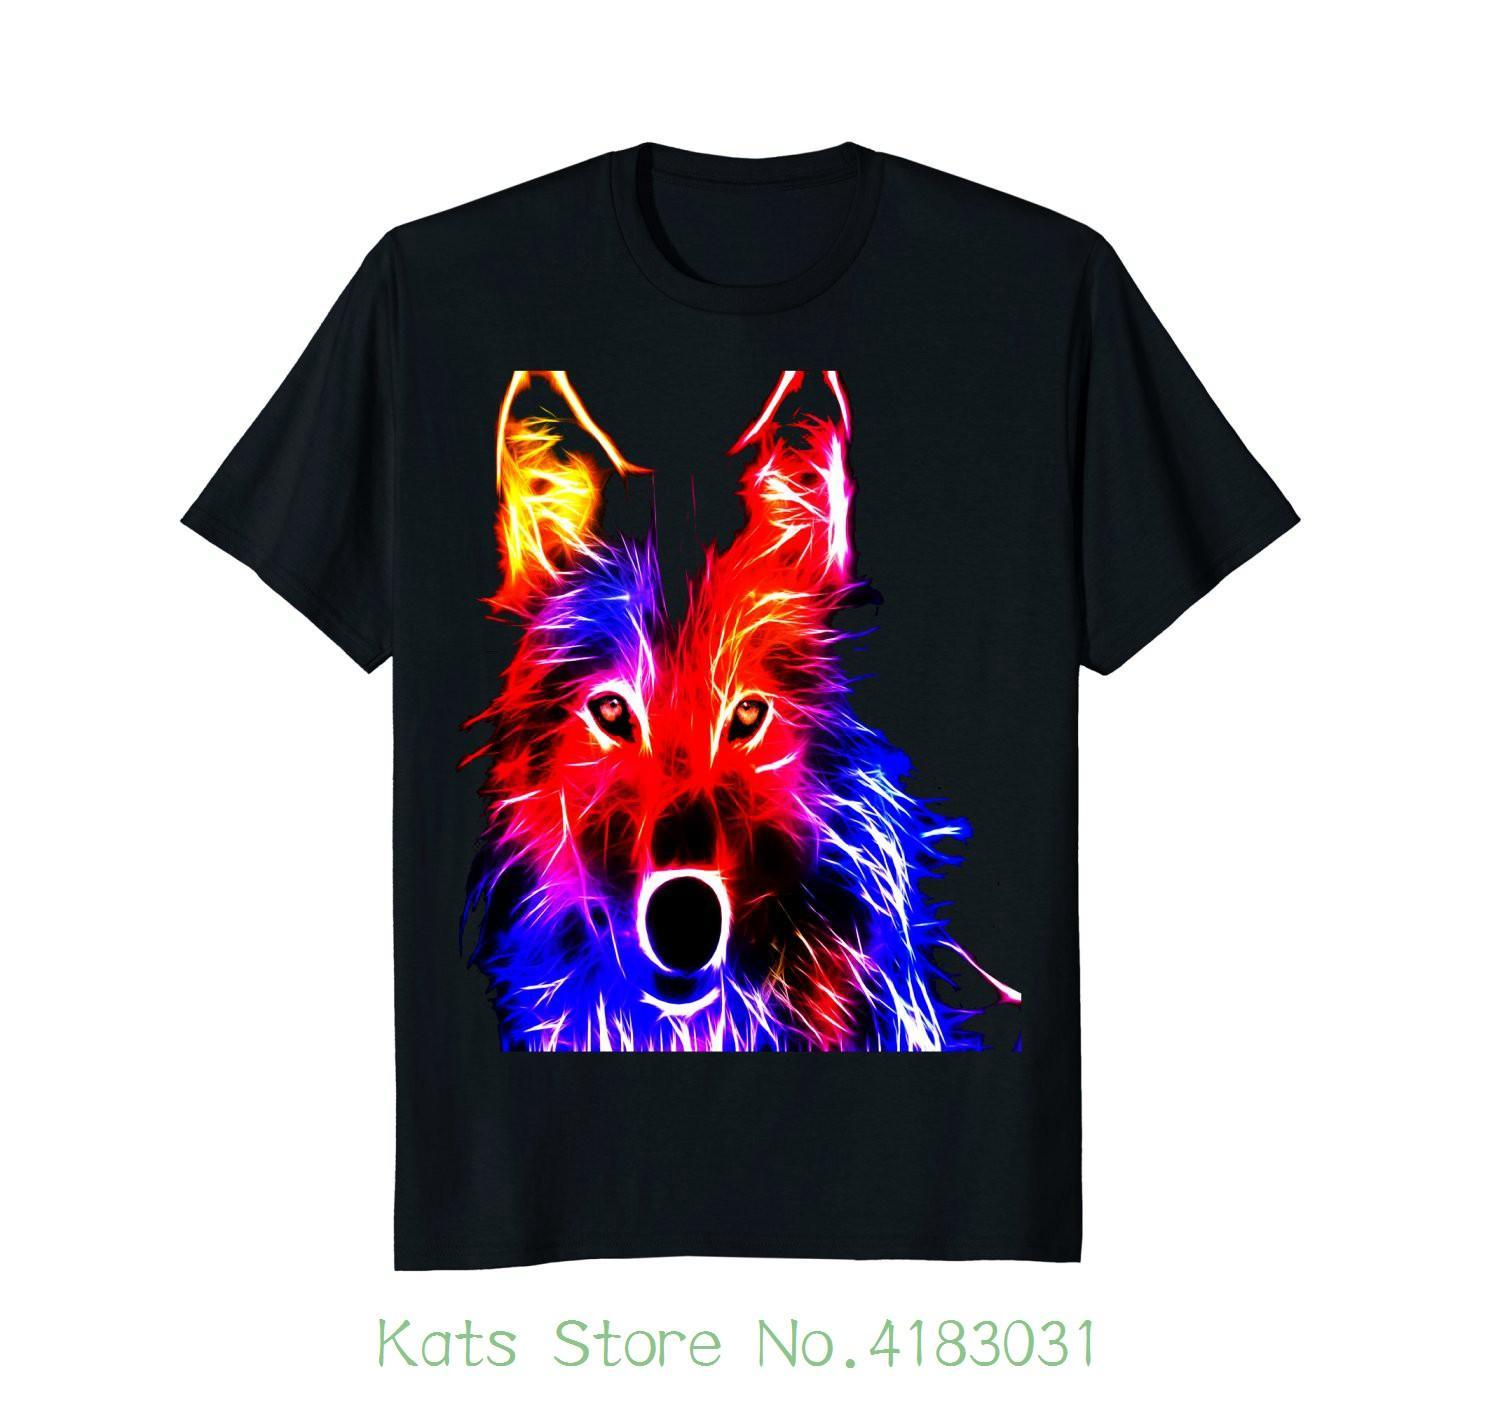 5cb19375ac9c Iridescent Color Wolf Wolves Vibrant Hd T Shirt Printed Summer Style Tees  Male Harajuku Top Fitness Brand Clothing Best Deal On T Shirts That T Shirt  From ...